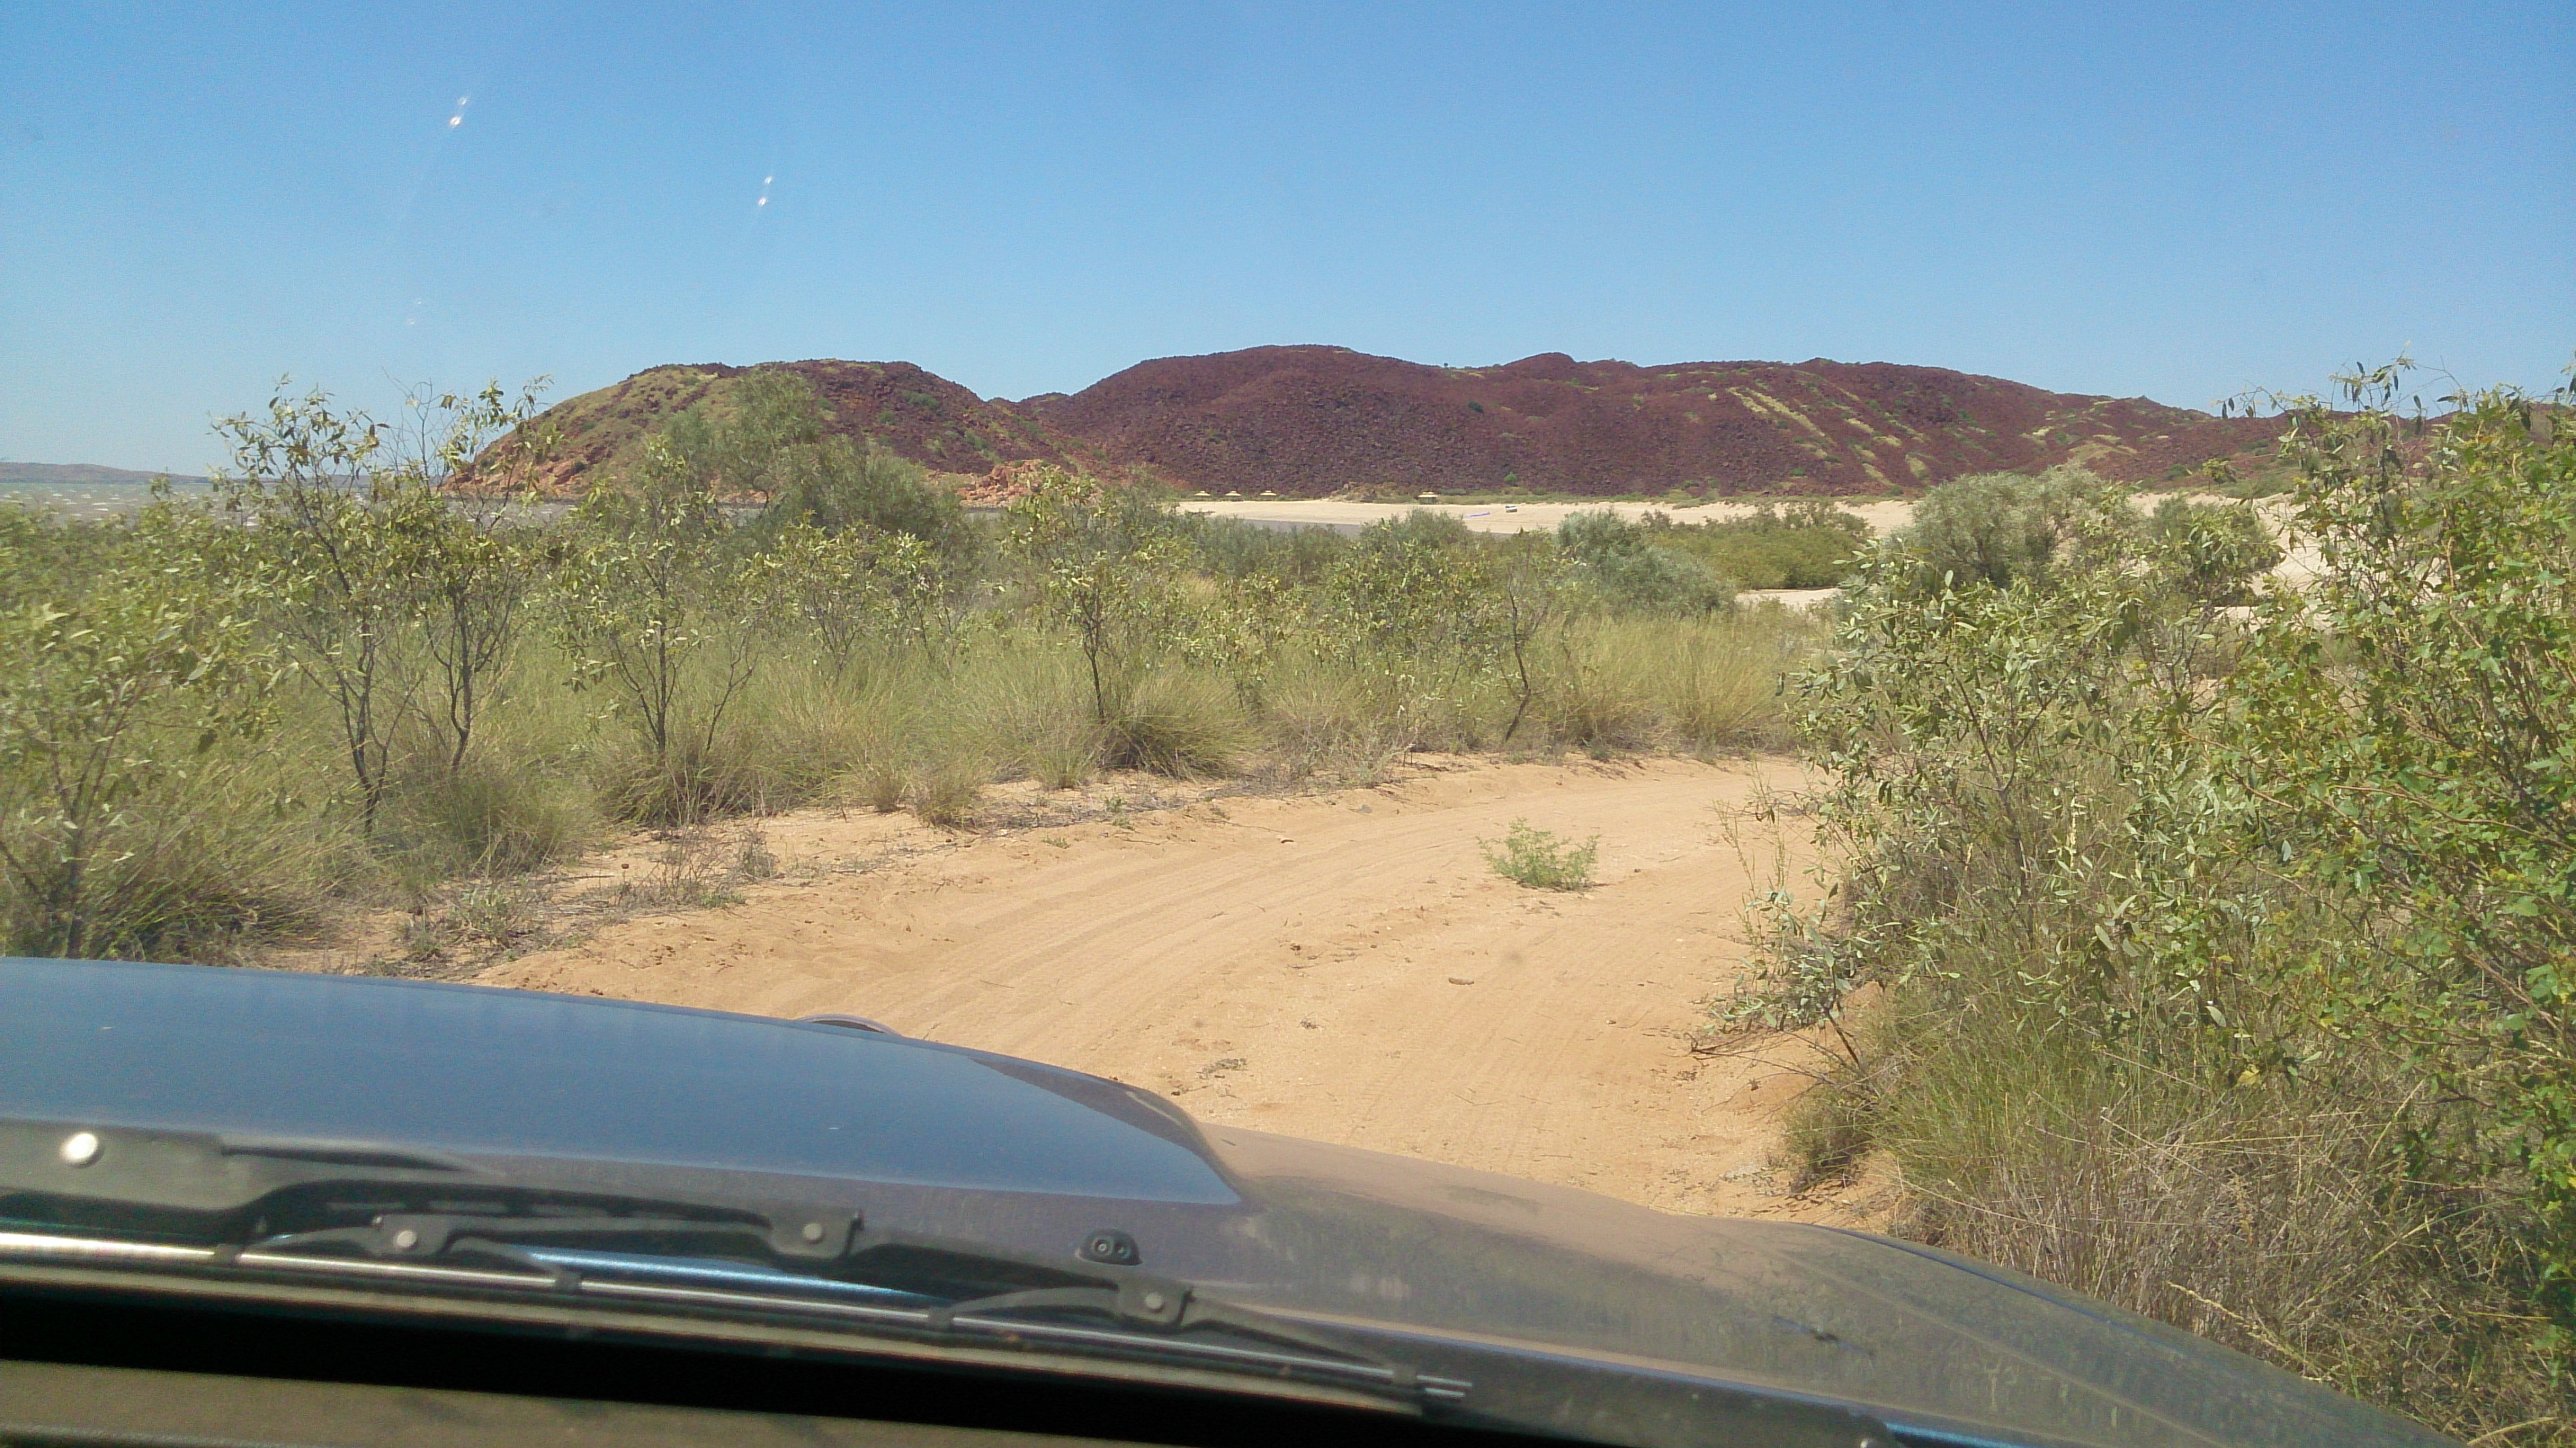 Driving on the beach at Hearson's Cove, Dampier.